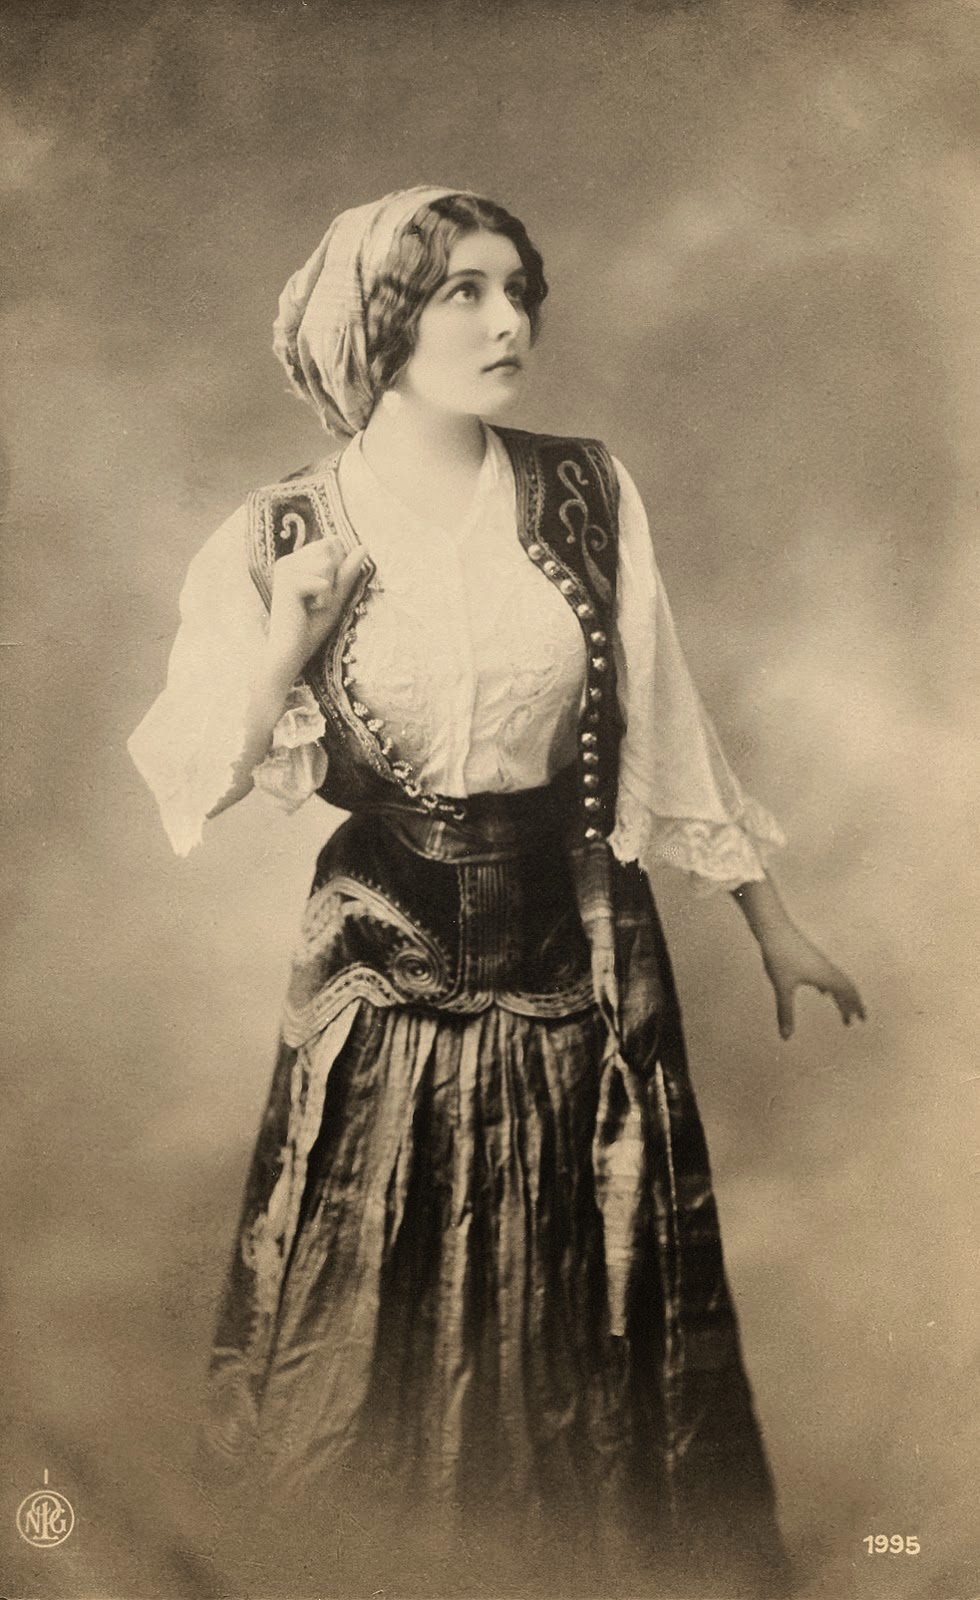 Dating photographs 19th century